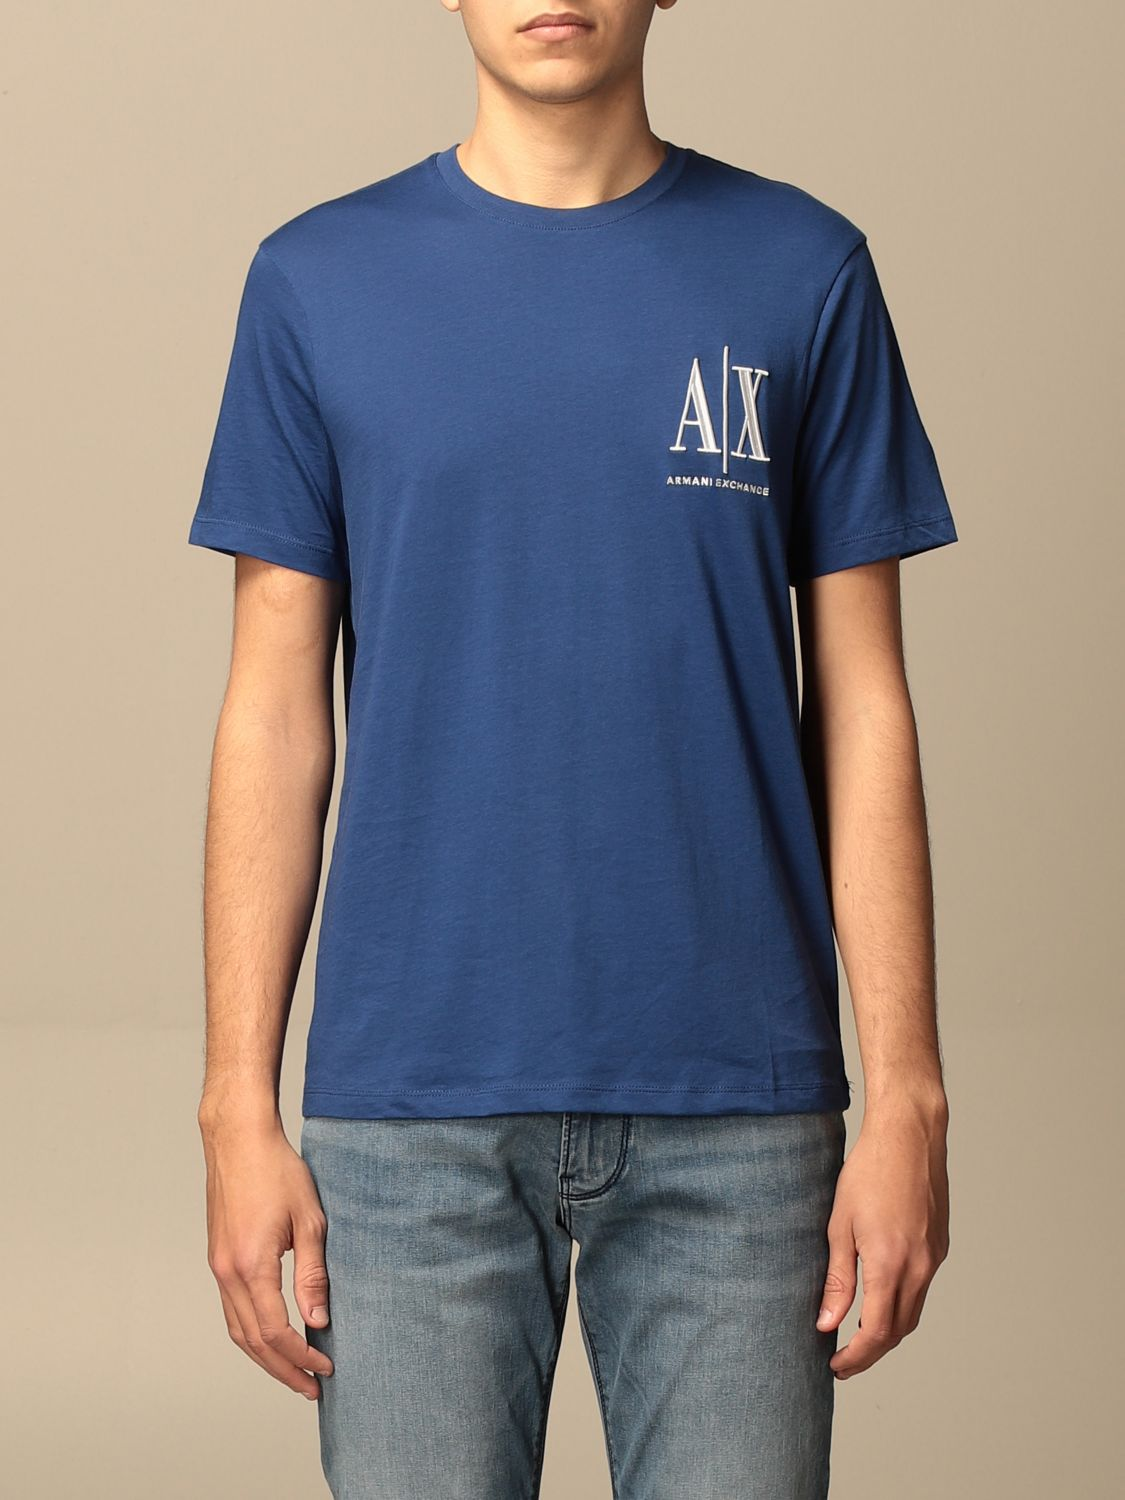 T-shirt Armani Exchange: Armani Exchange T-shirt with logo blue 1